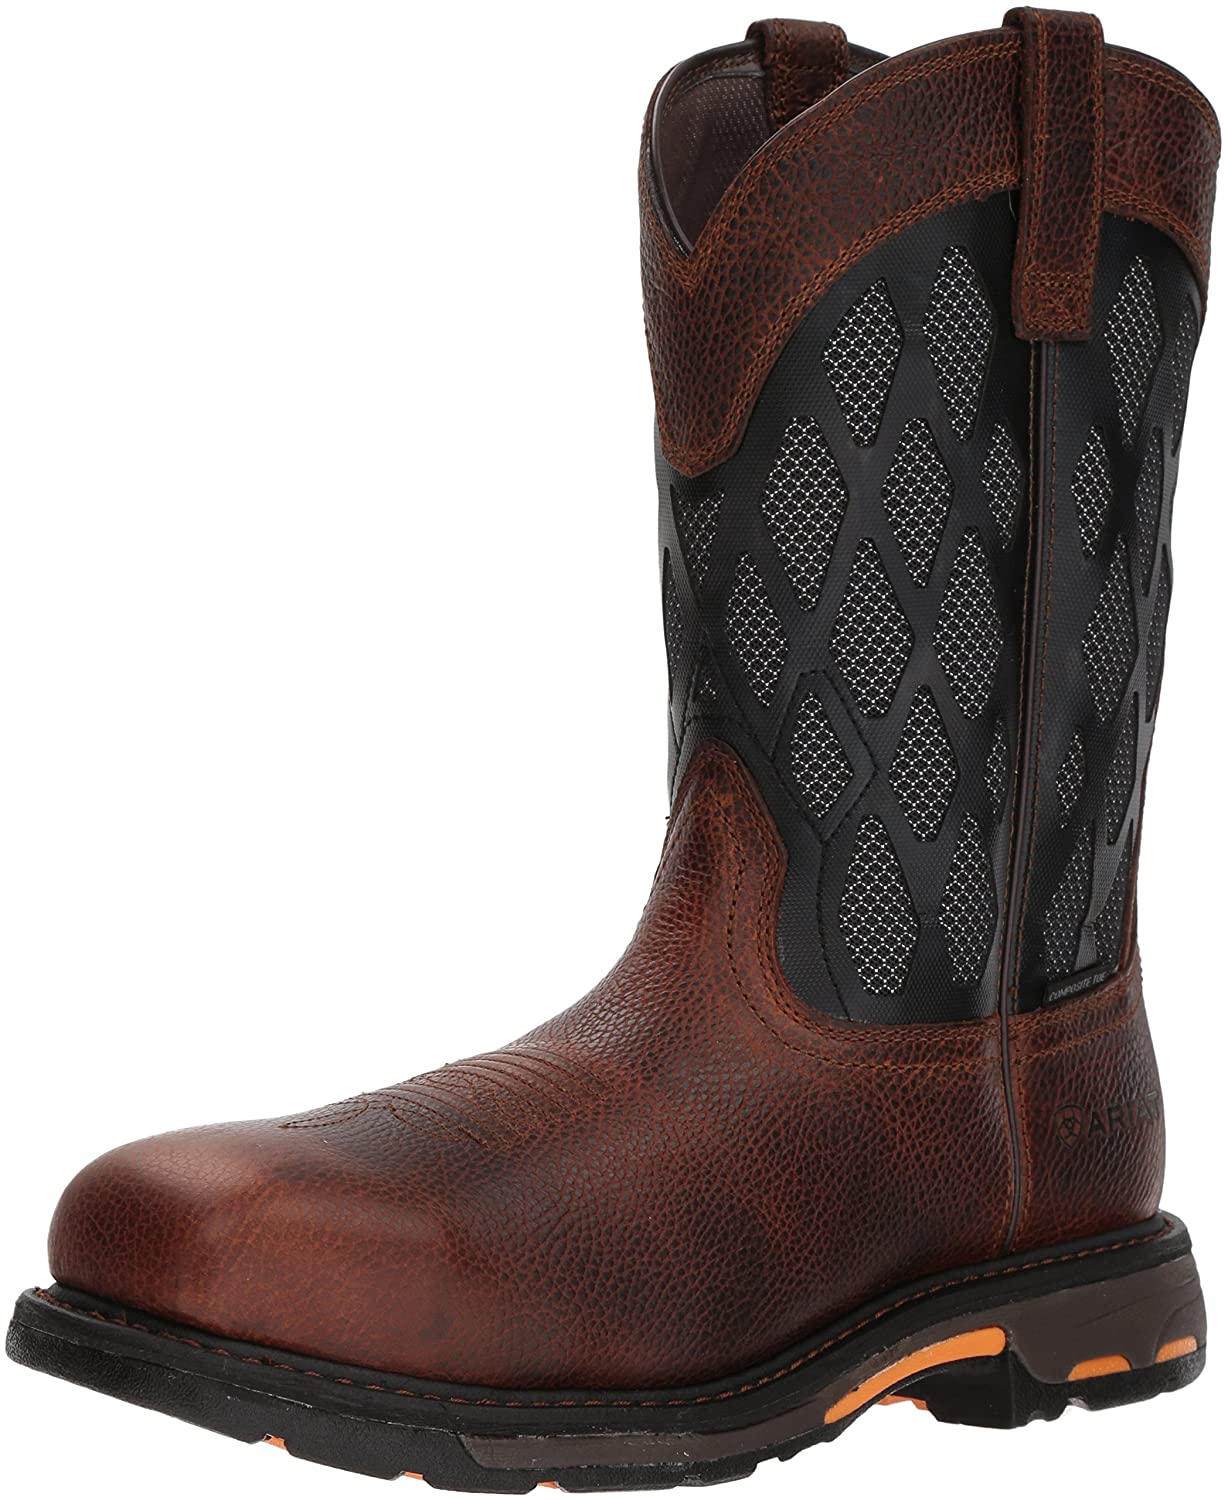 Ariat メンズ 10023061 Brown Ruddy/Charcoal 8 E US  B076RRB2R9